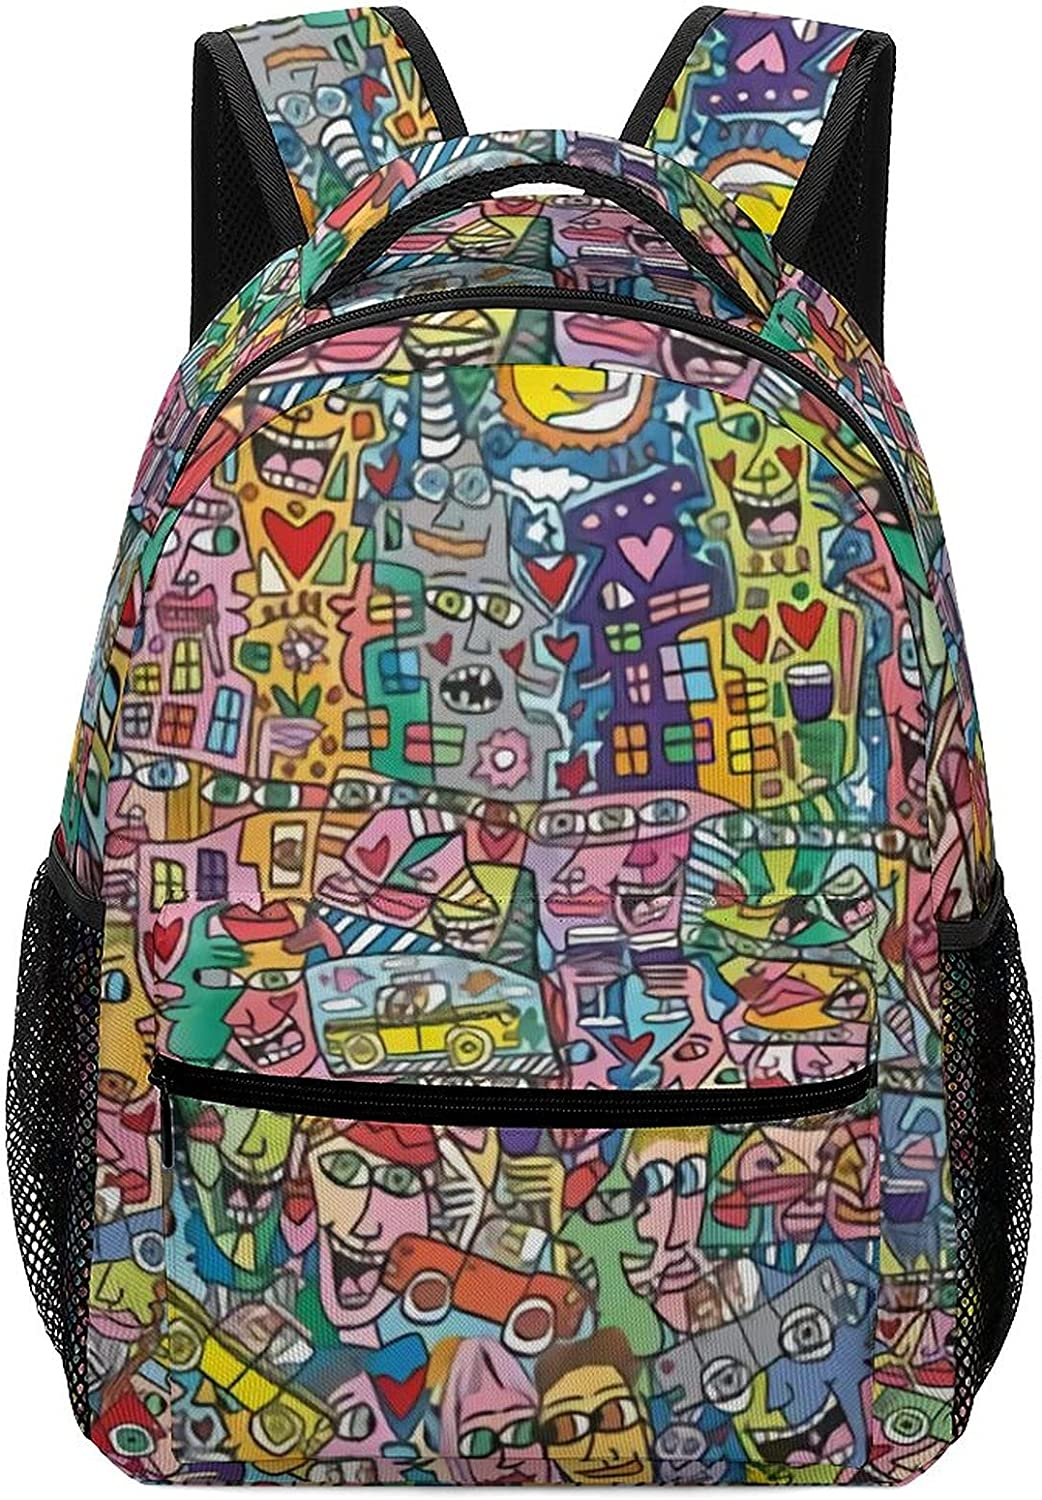 cool Store Limited time sale graffiti pattern backpack printe Oxford cartoon doodle